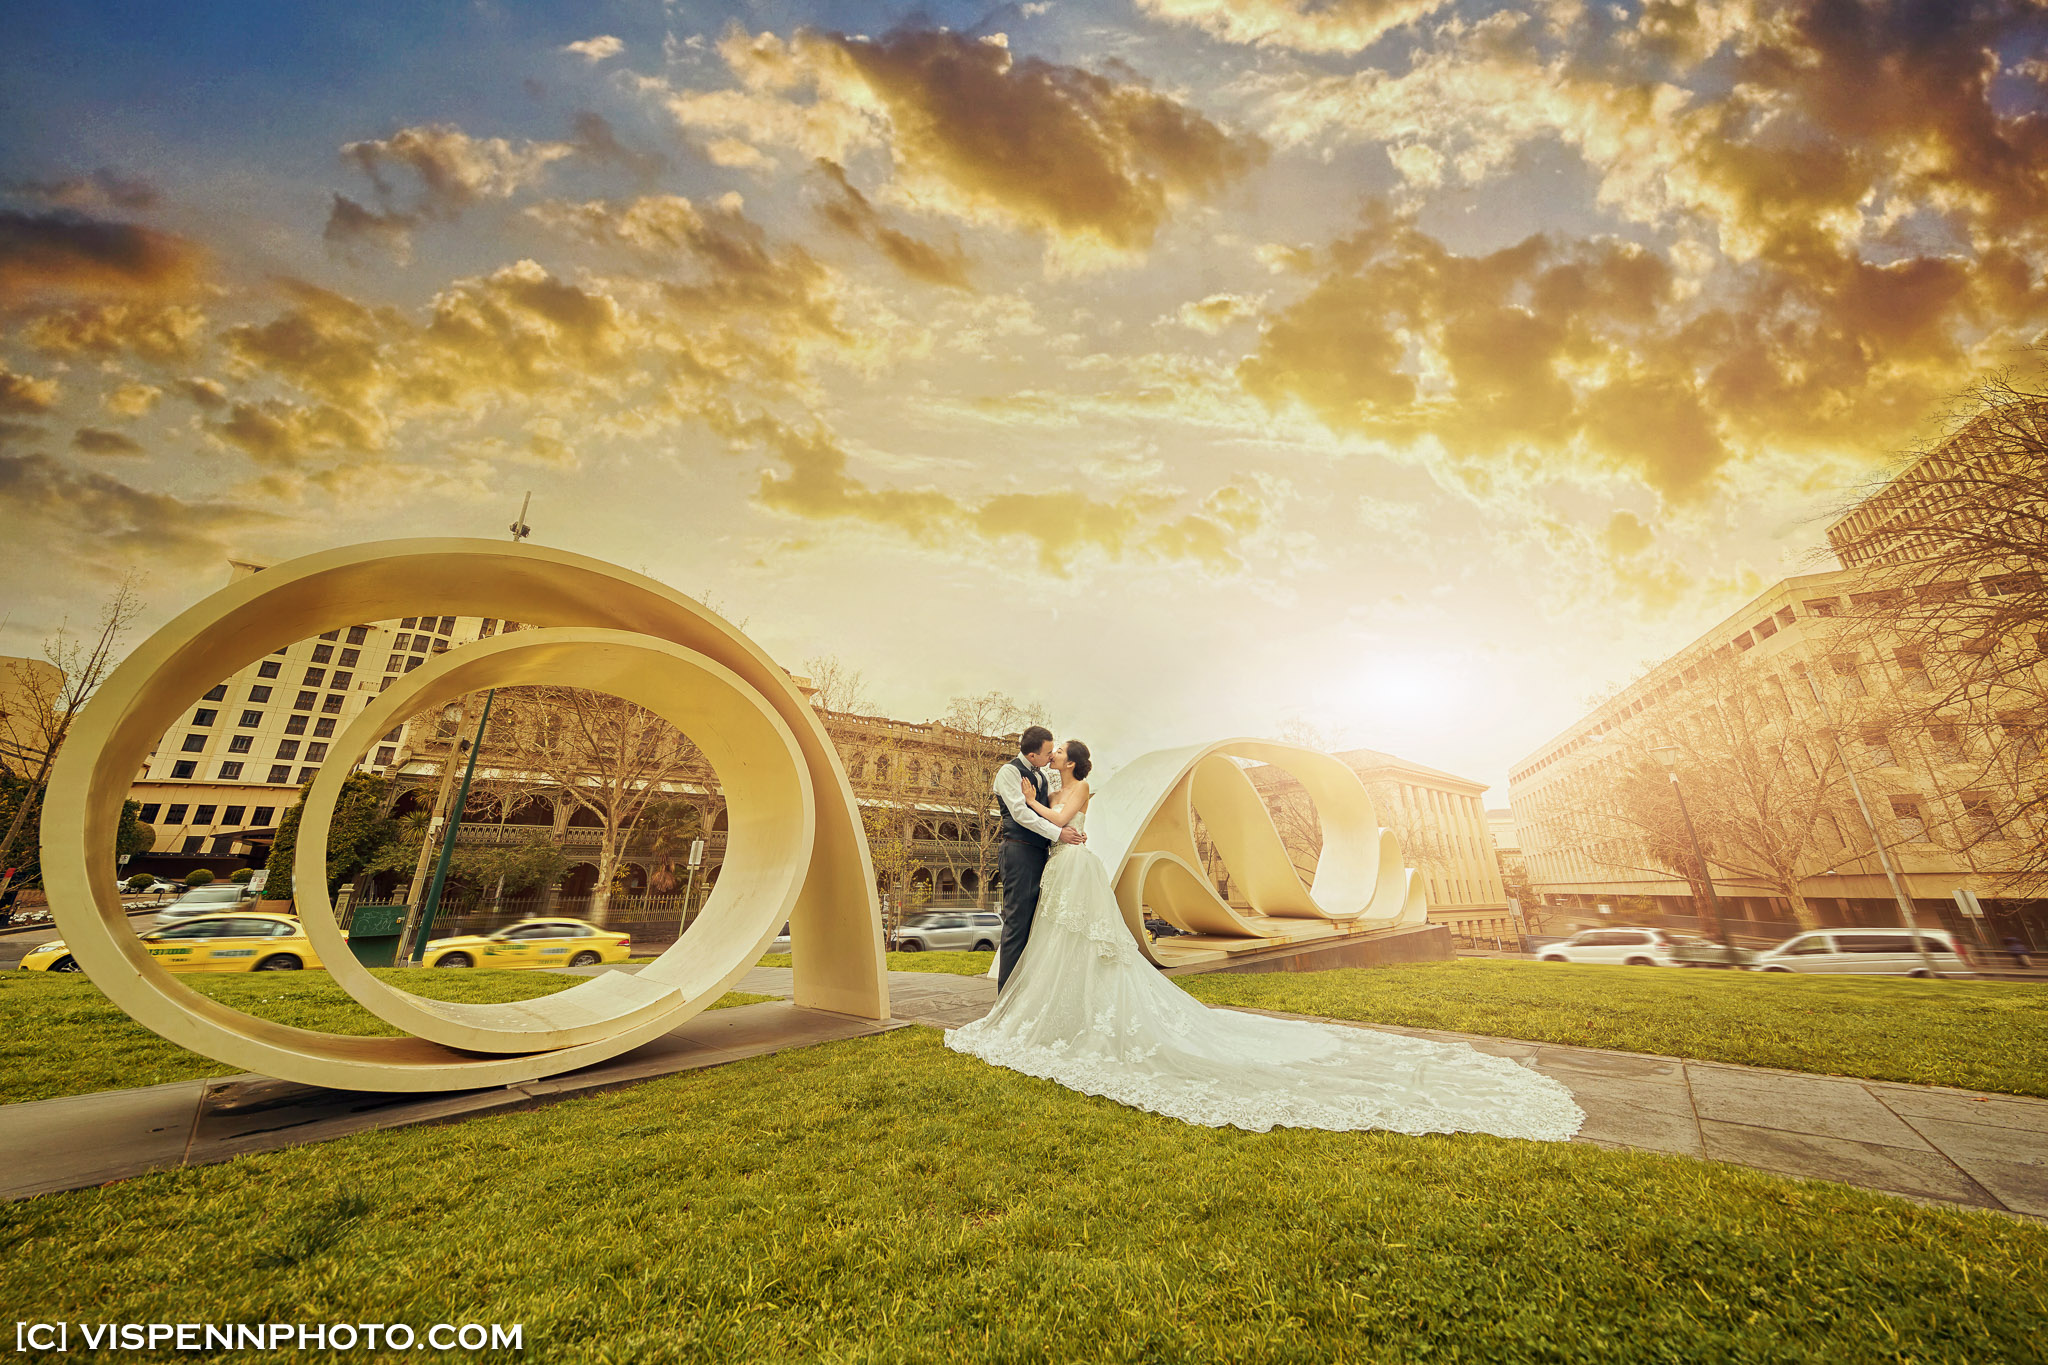 PRE WEDDING Photography Melbourne ZHPENN XXD 2488 1